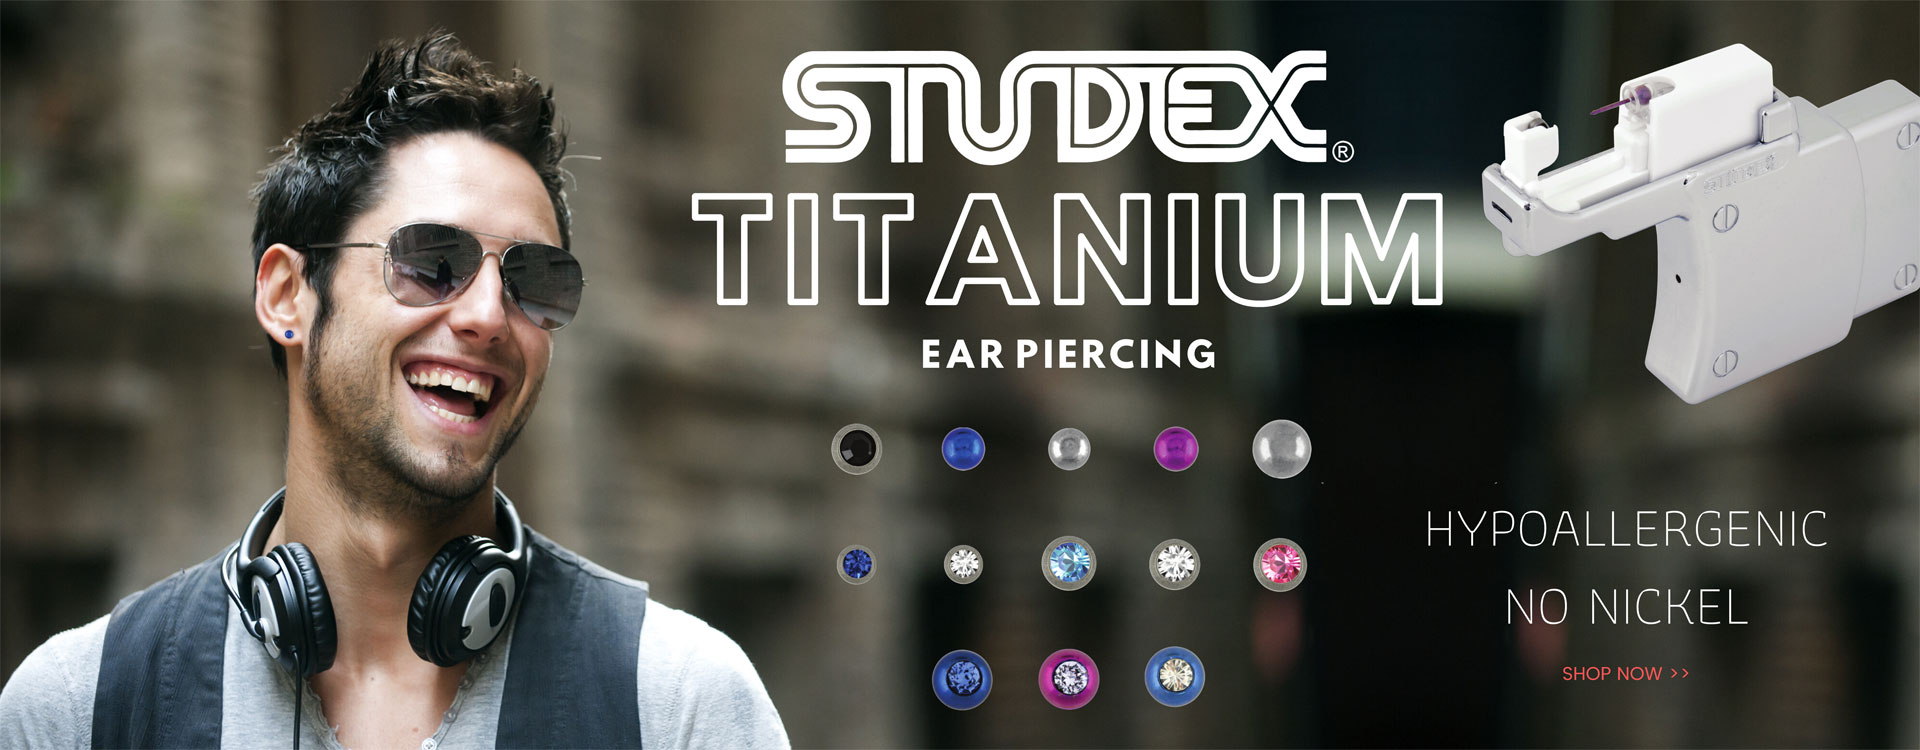 TITANIUM-EAR-PIERCING-1920x Distributor of Studex Ear Piercing, Toys, Jewellery, Beauty Products - Adnohr